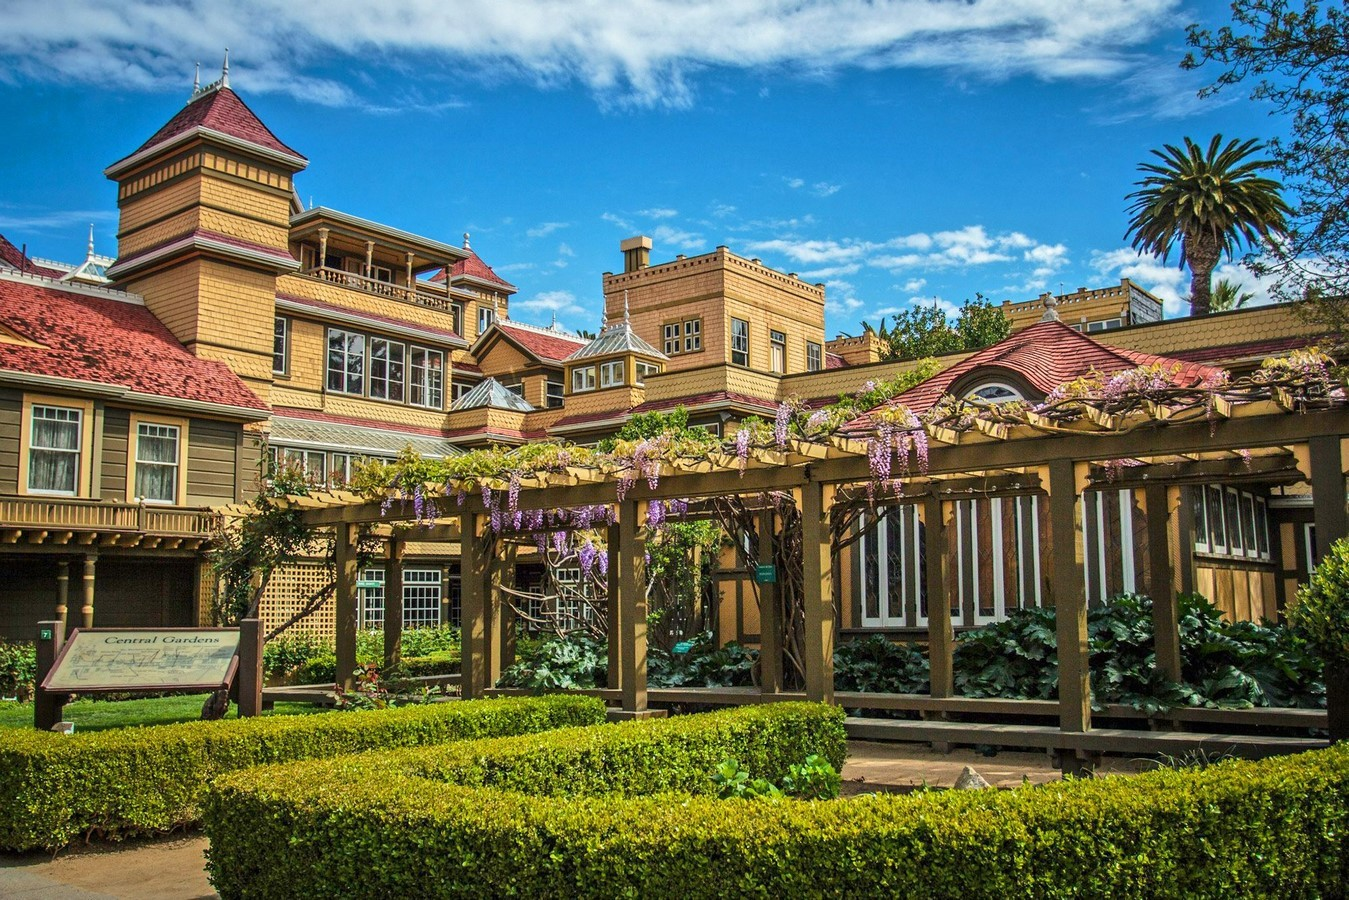 Winchester Mystery House, California, USA: Architectural Mystery - Sheet1